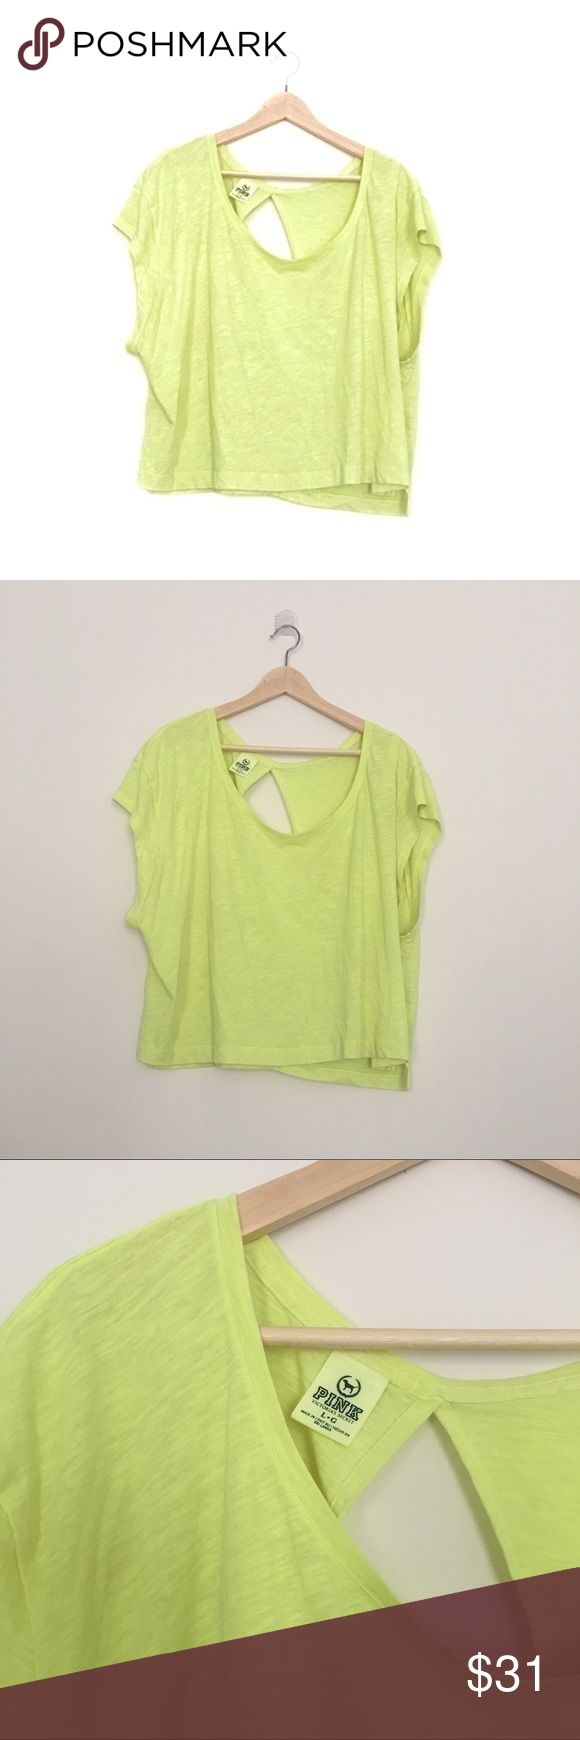 Pink VS neon yellow top Excellent flawless condition neon yellow top with opening in the back PINK Victoria's Secret Tops